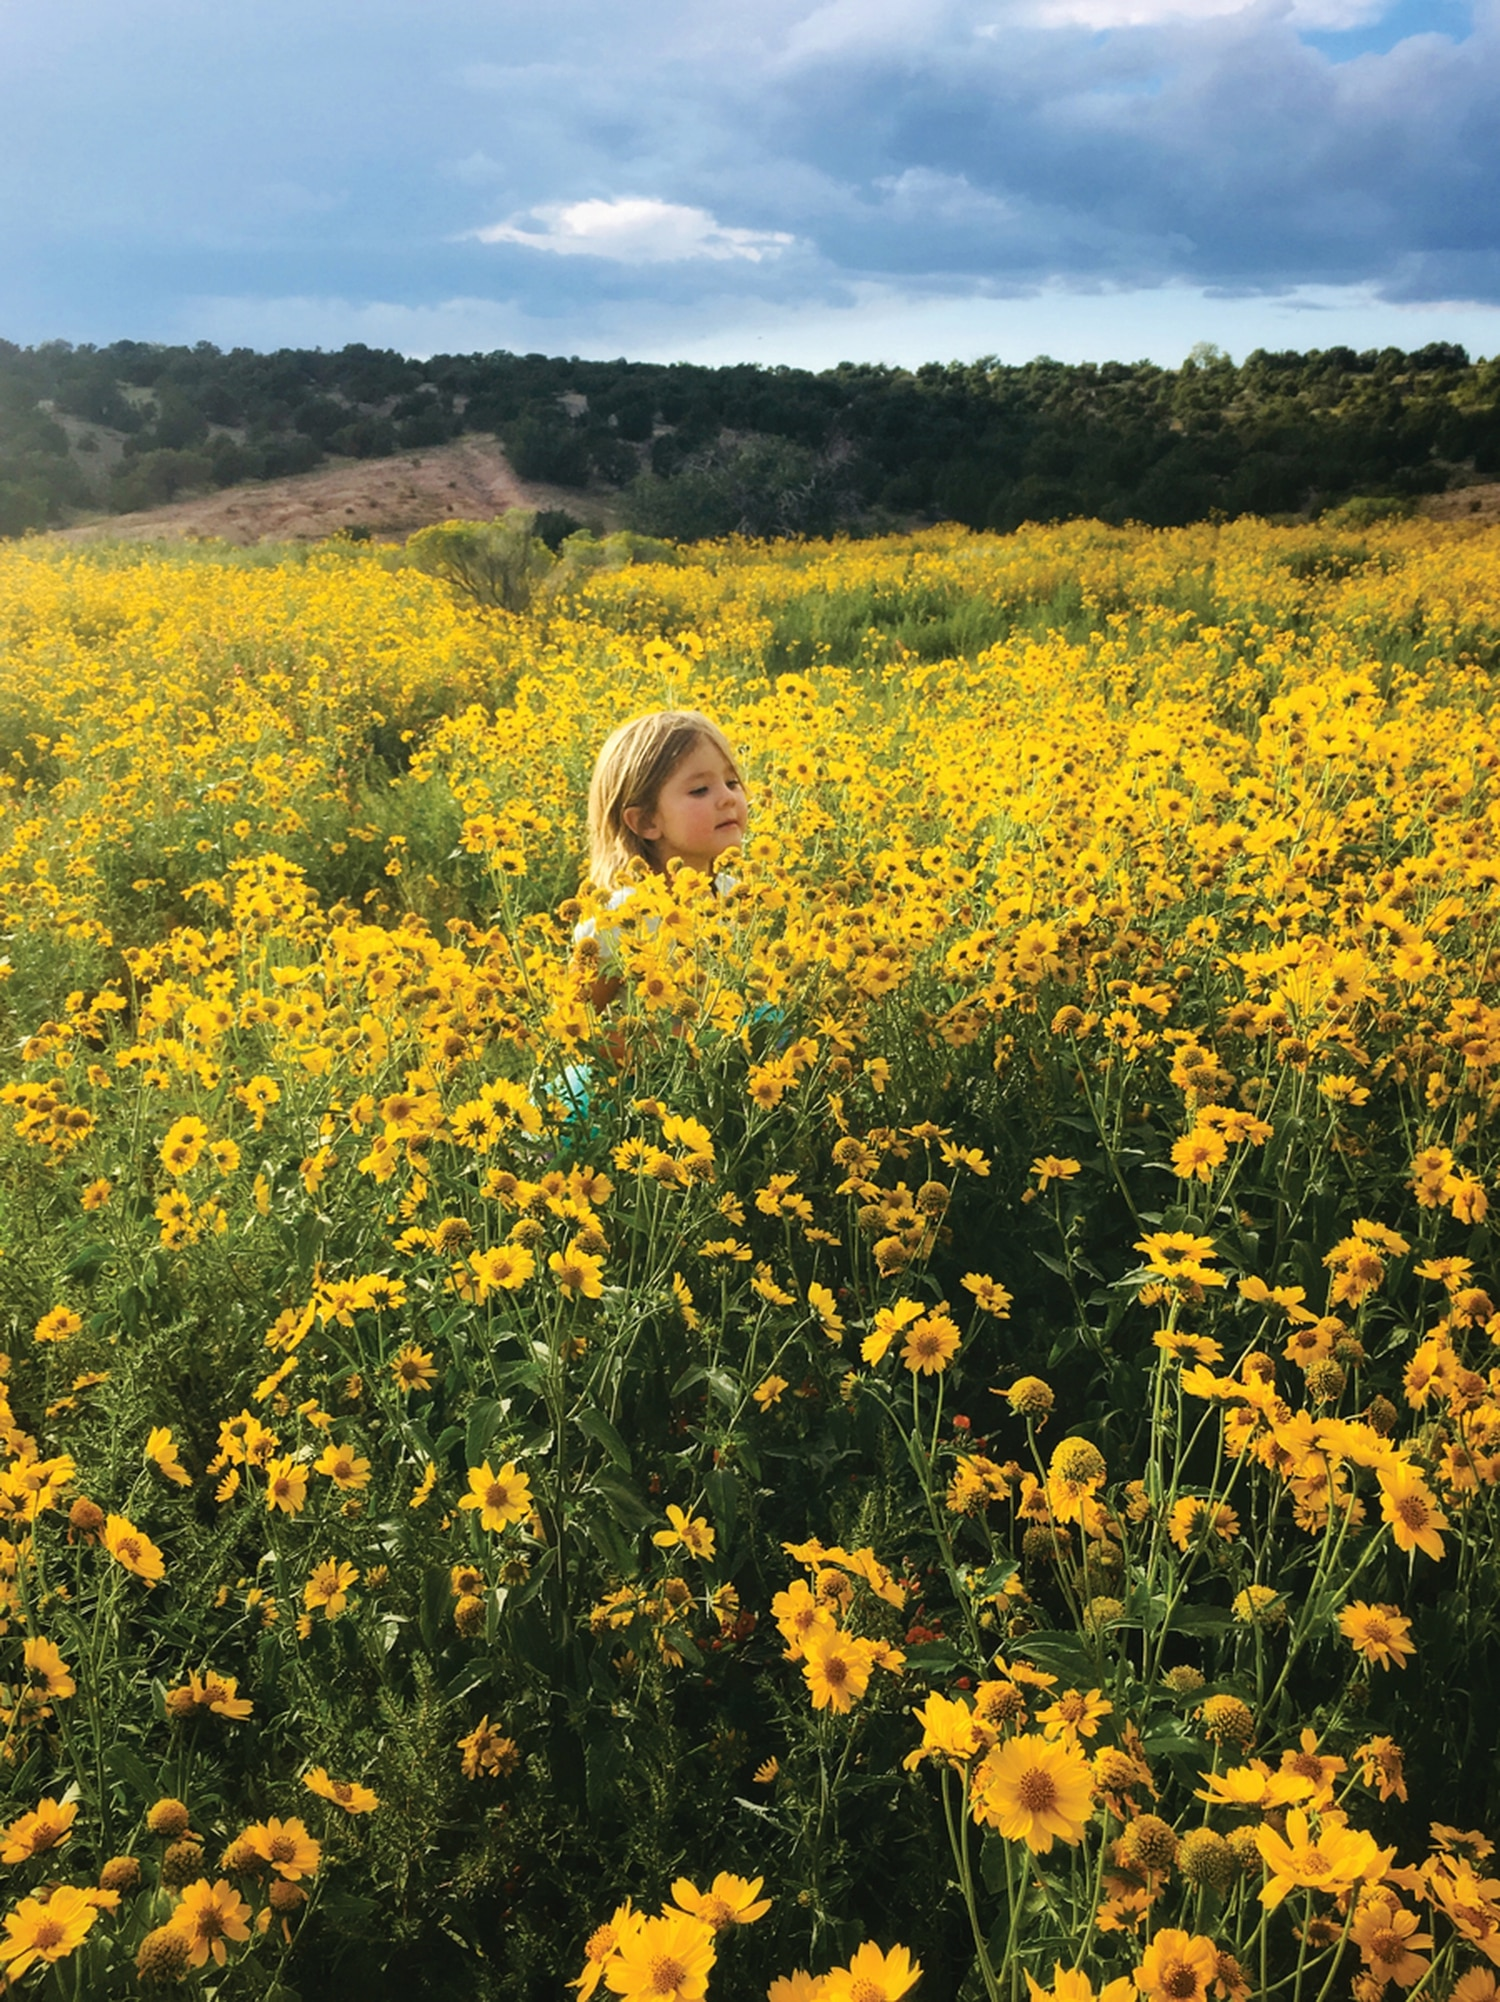 Playing in the Fields of Flowers (Frank S. Ortiz Dog Park, Santa Fe)